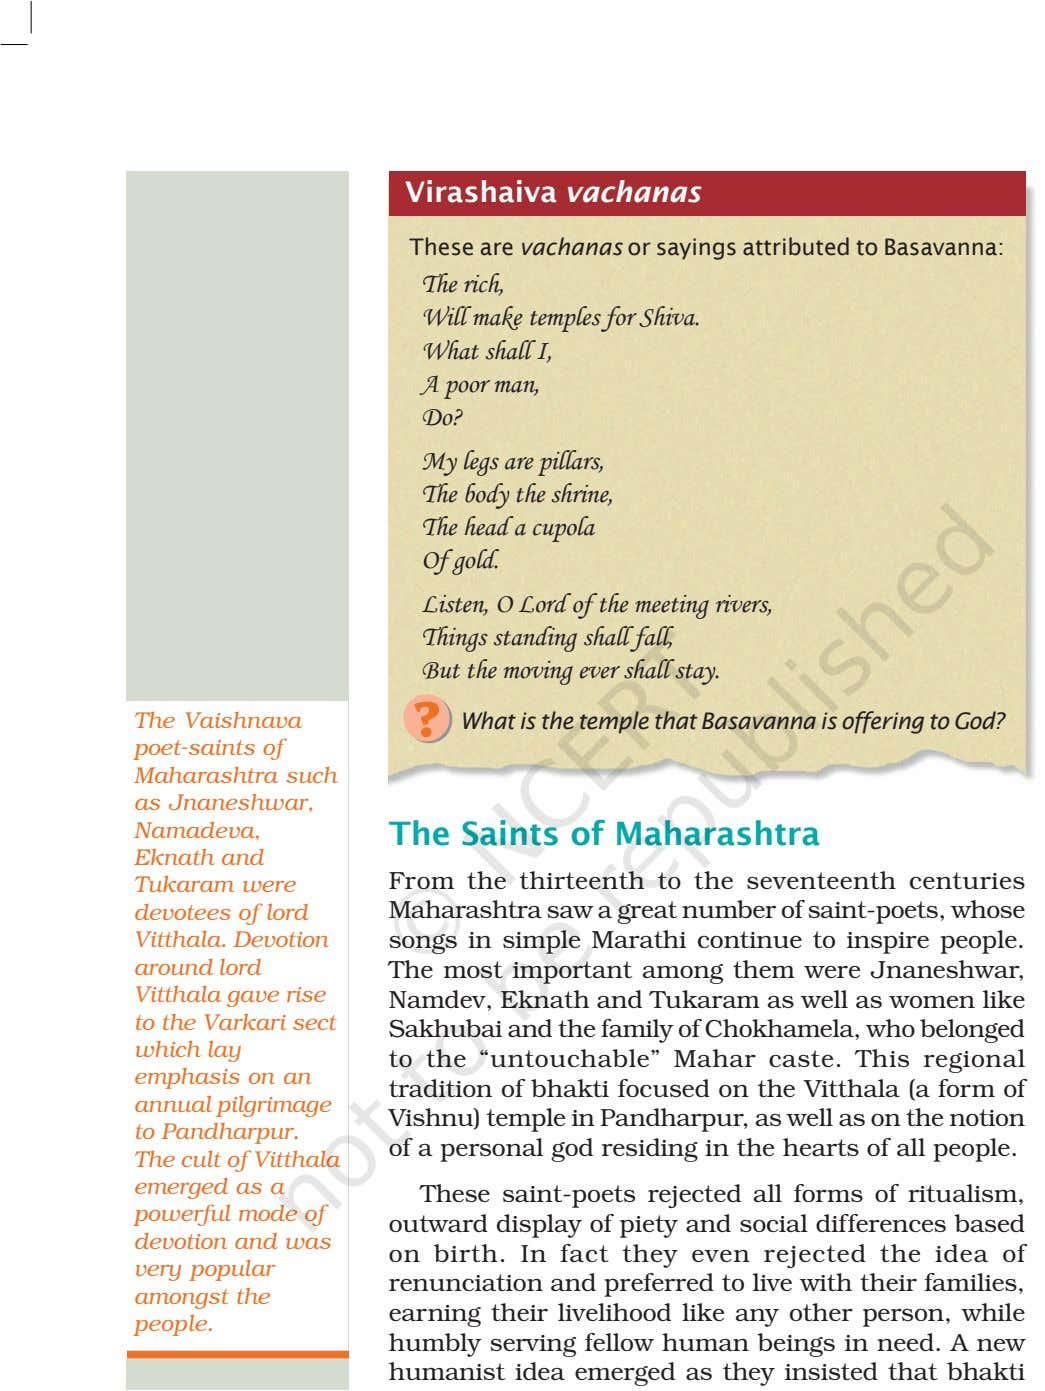 Virashaiva vachanas These are vachanas or sayings attributed to Basavanna: The rich, Will make temples